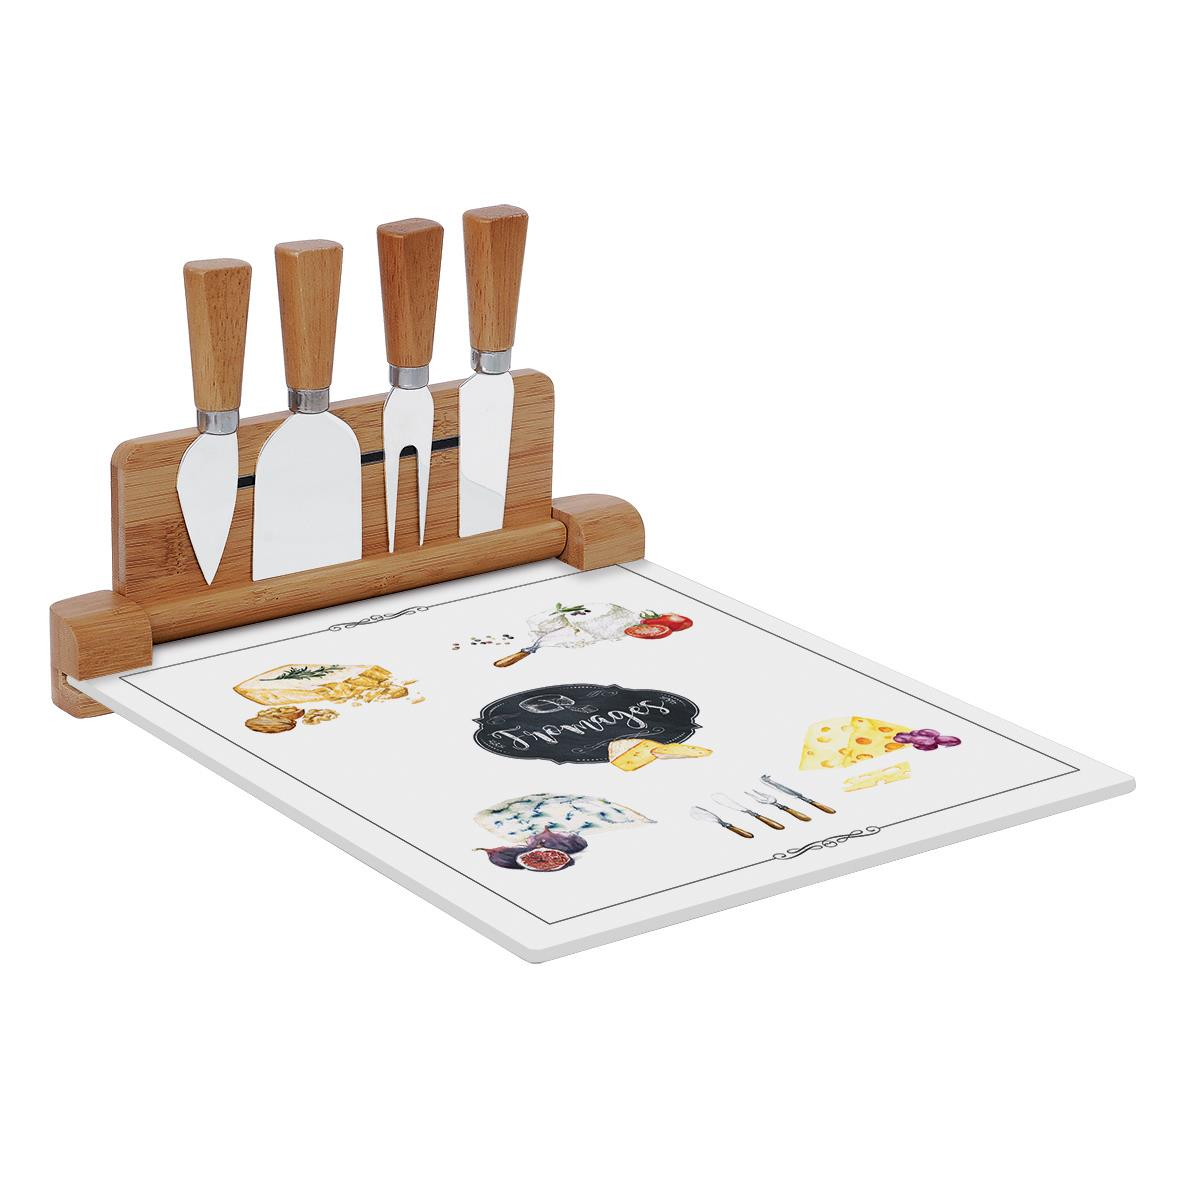 Cheese Cutting Board with 4 Knives